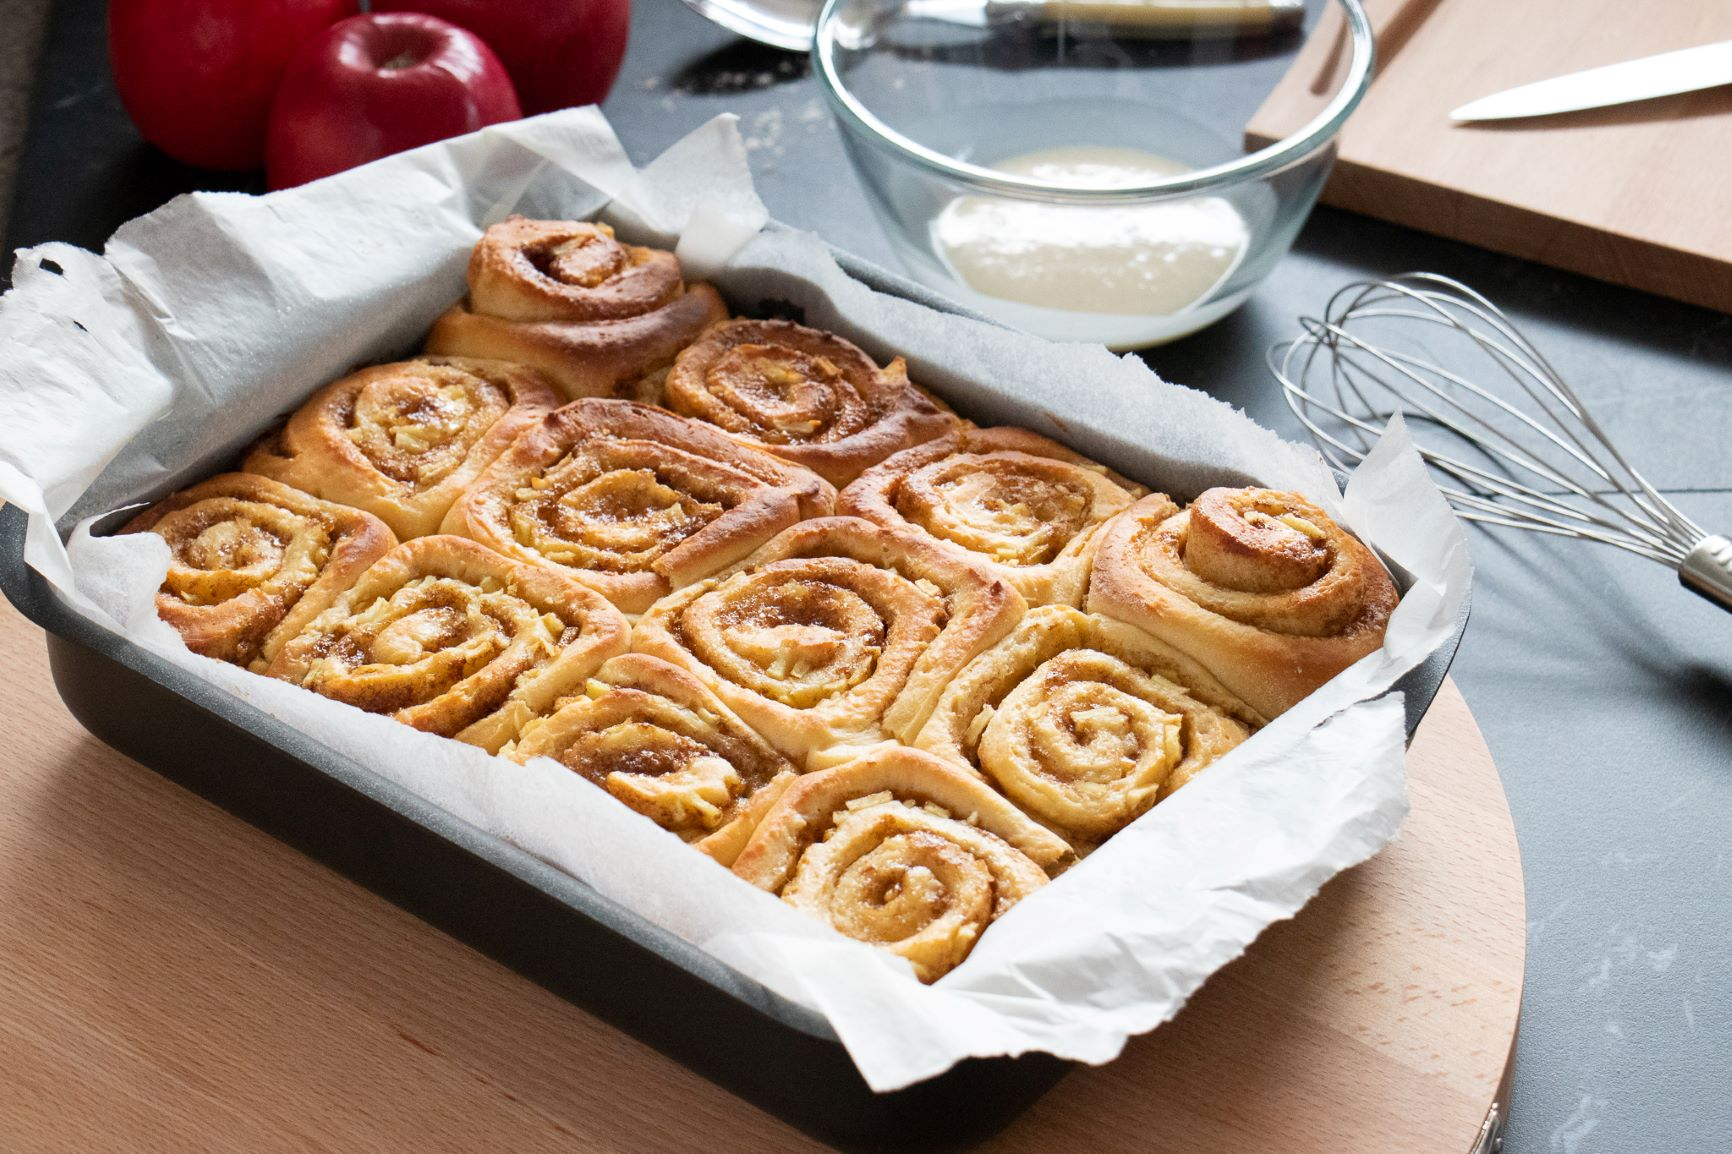 Apple Maple Syrup & Cinnamon Scrolls Recipe